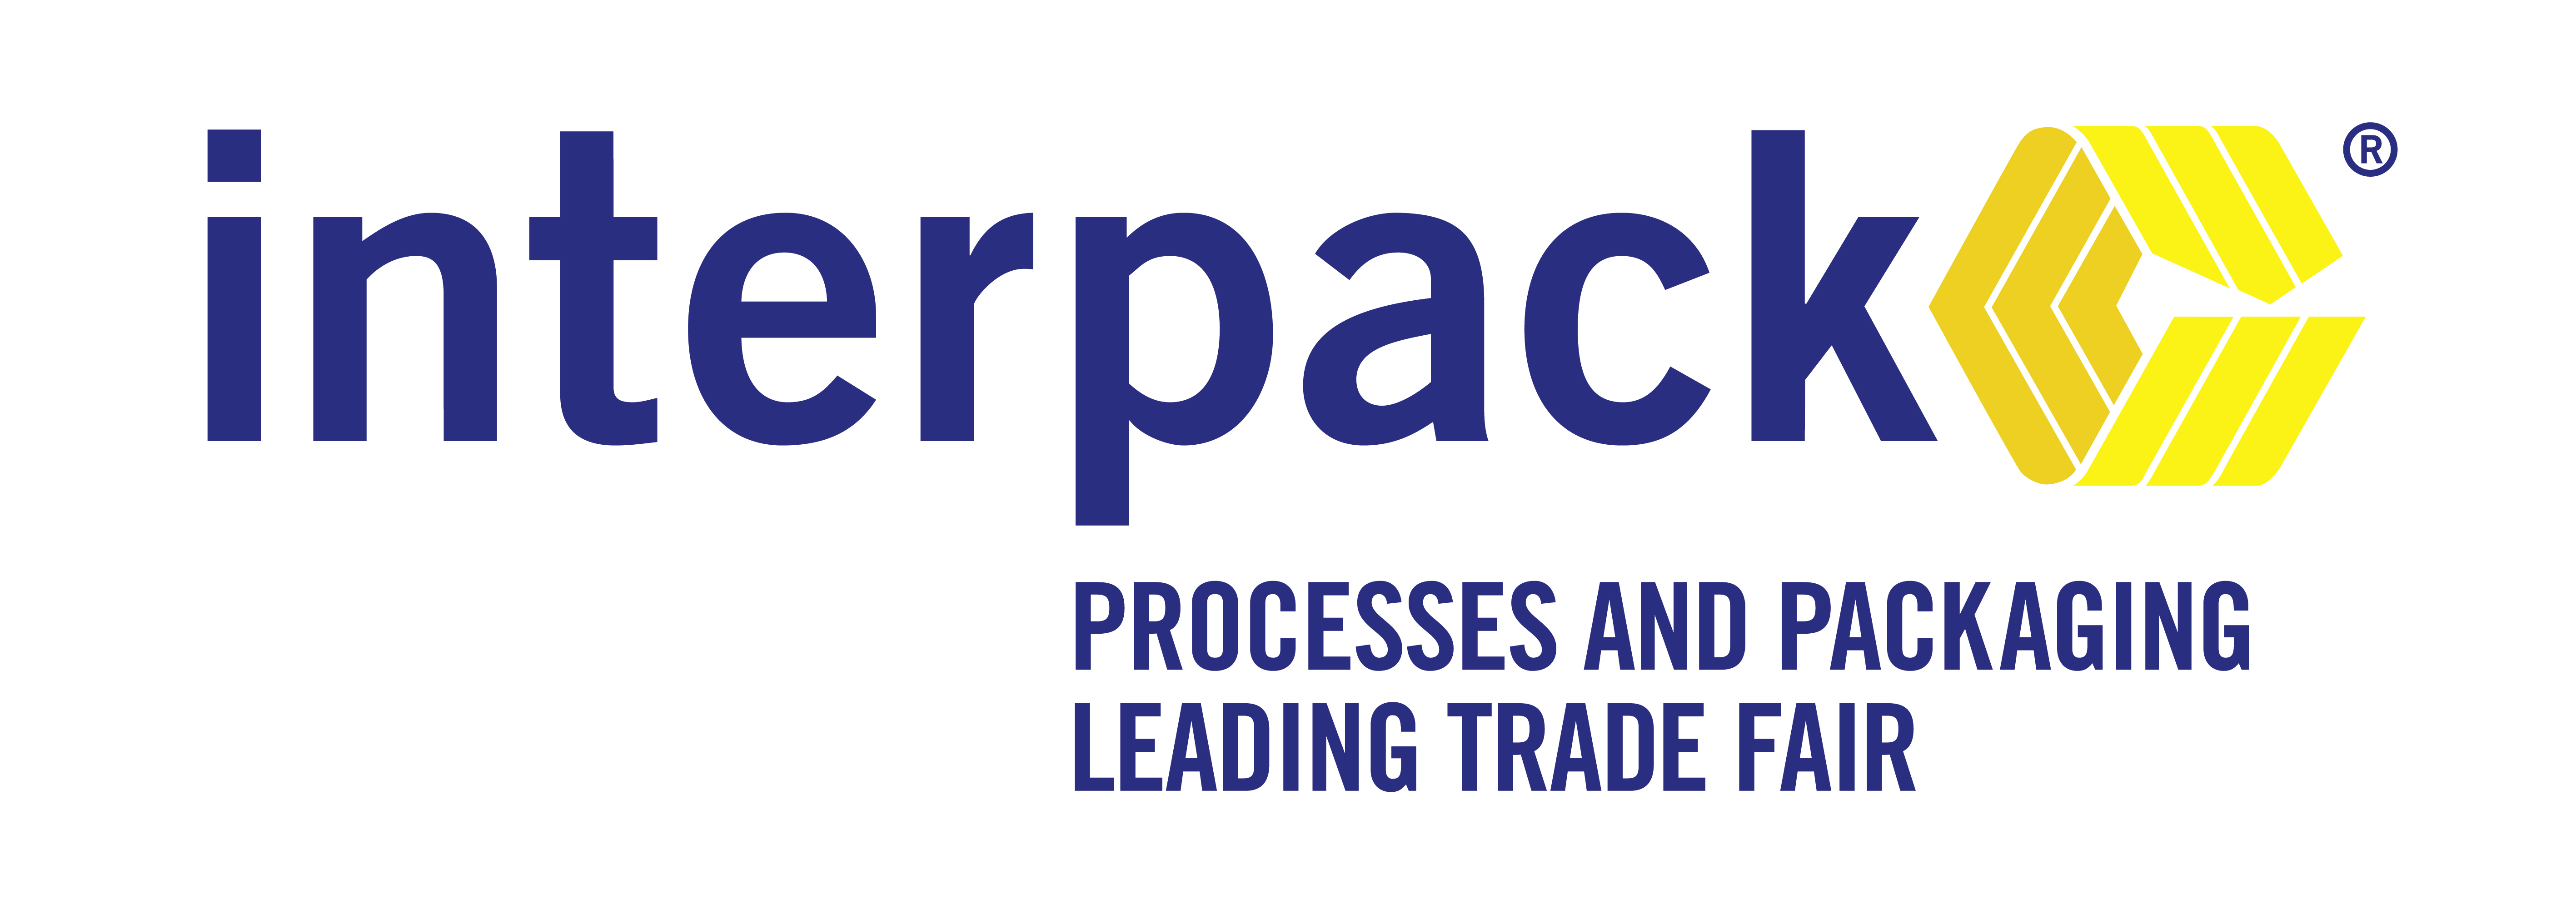 interpack-logo